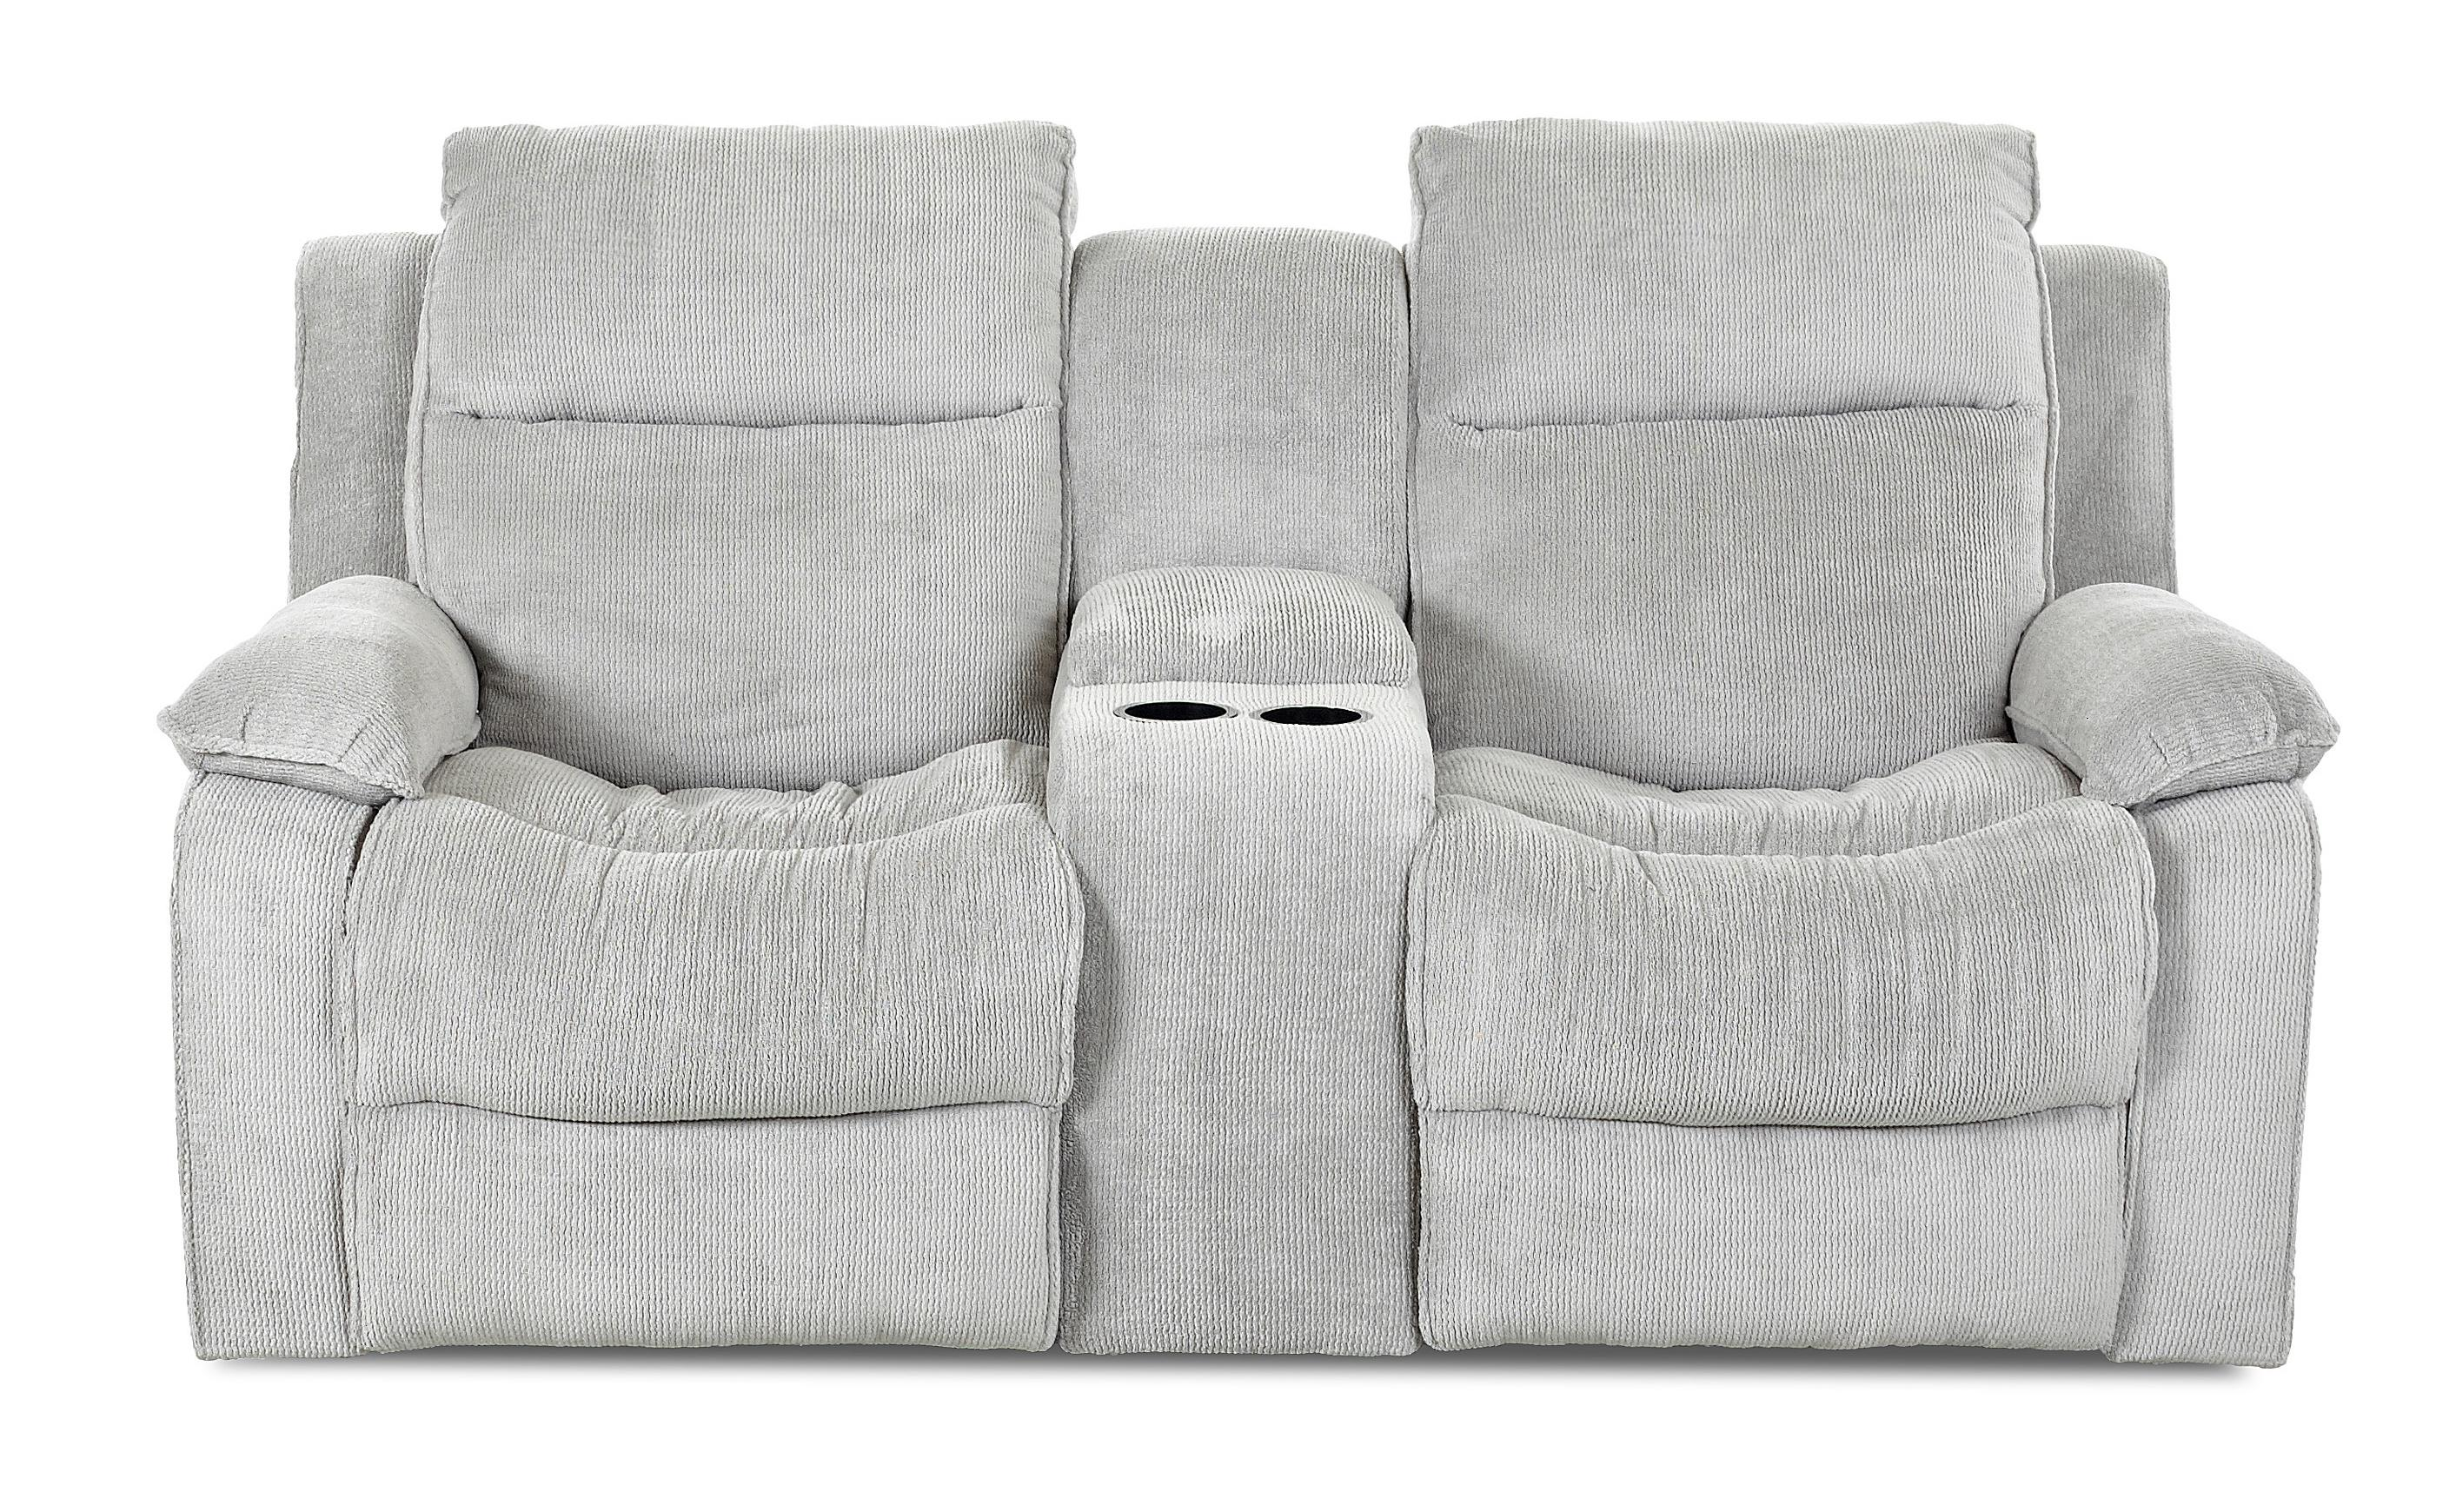 Castaway Casual Reclining Loveseat with Console by Klaussner at Rooms for Less